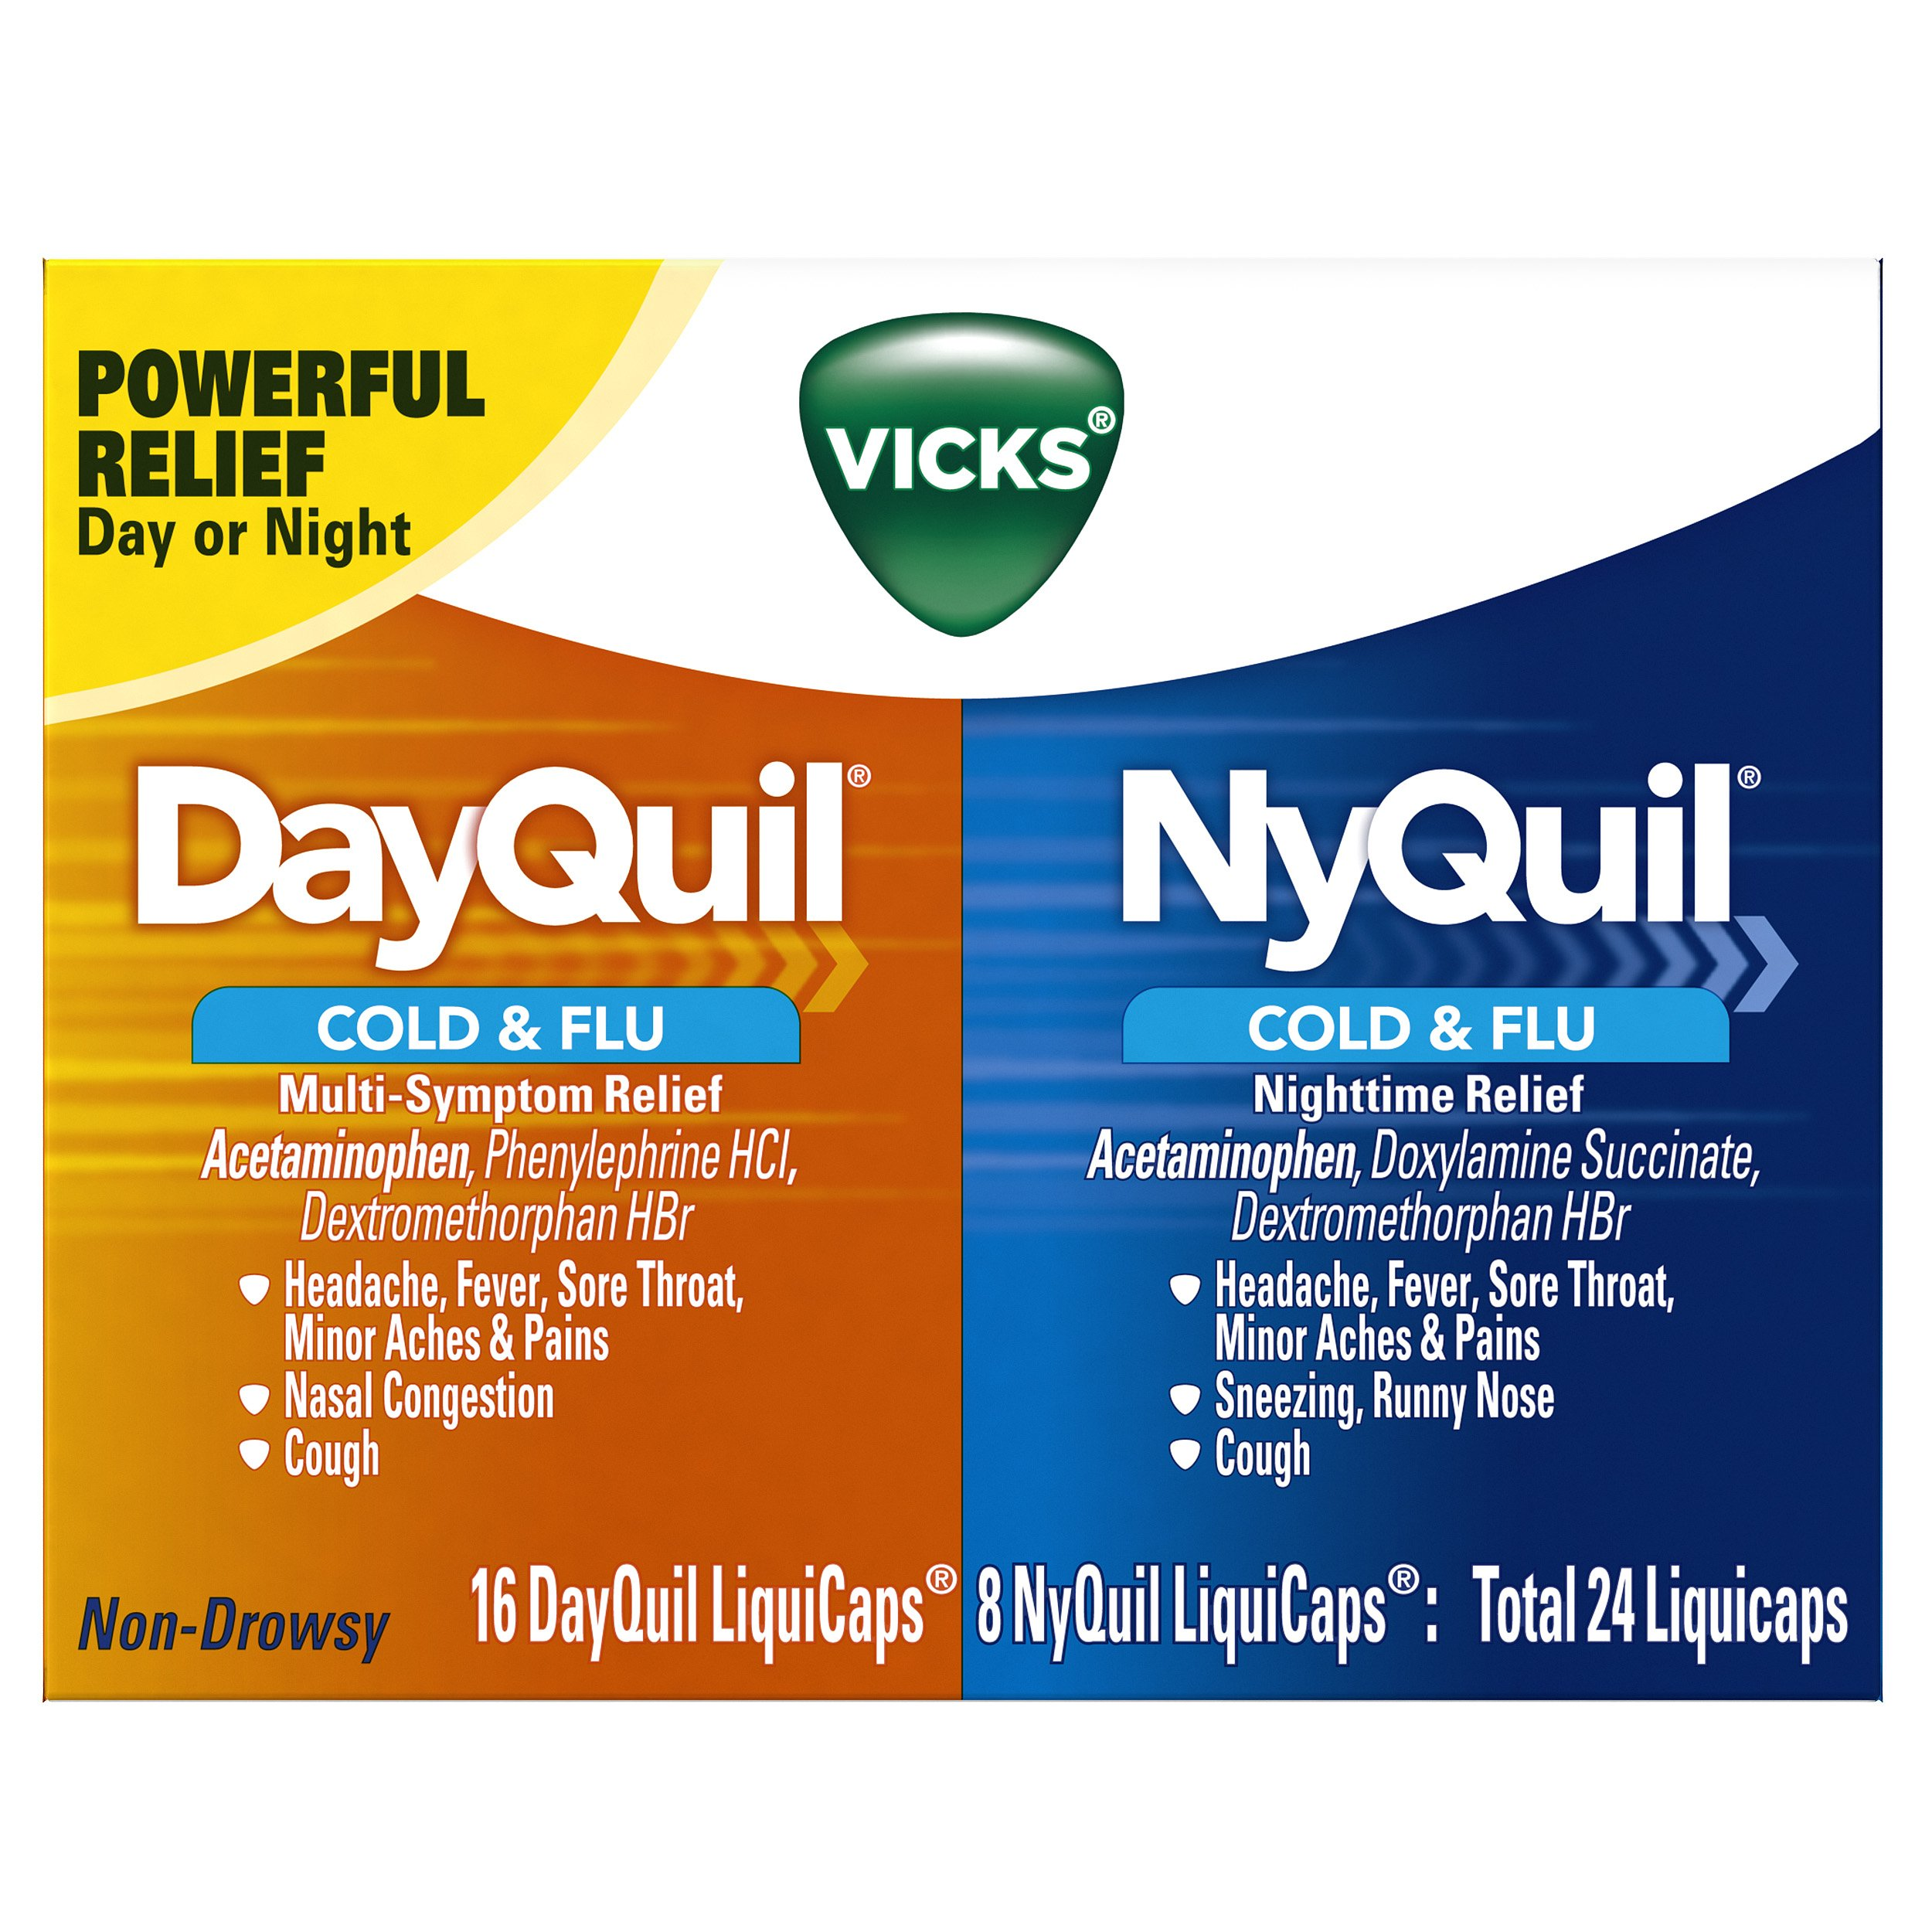 Vicks NyQuil Cold & Flu Nighttime Medicine and DayQuil Cold & Flu Medicine Convenience Pack 24 Count (Packaging May Vary)